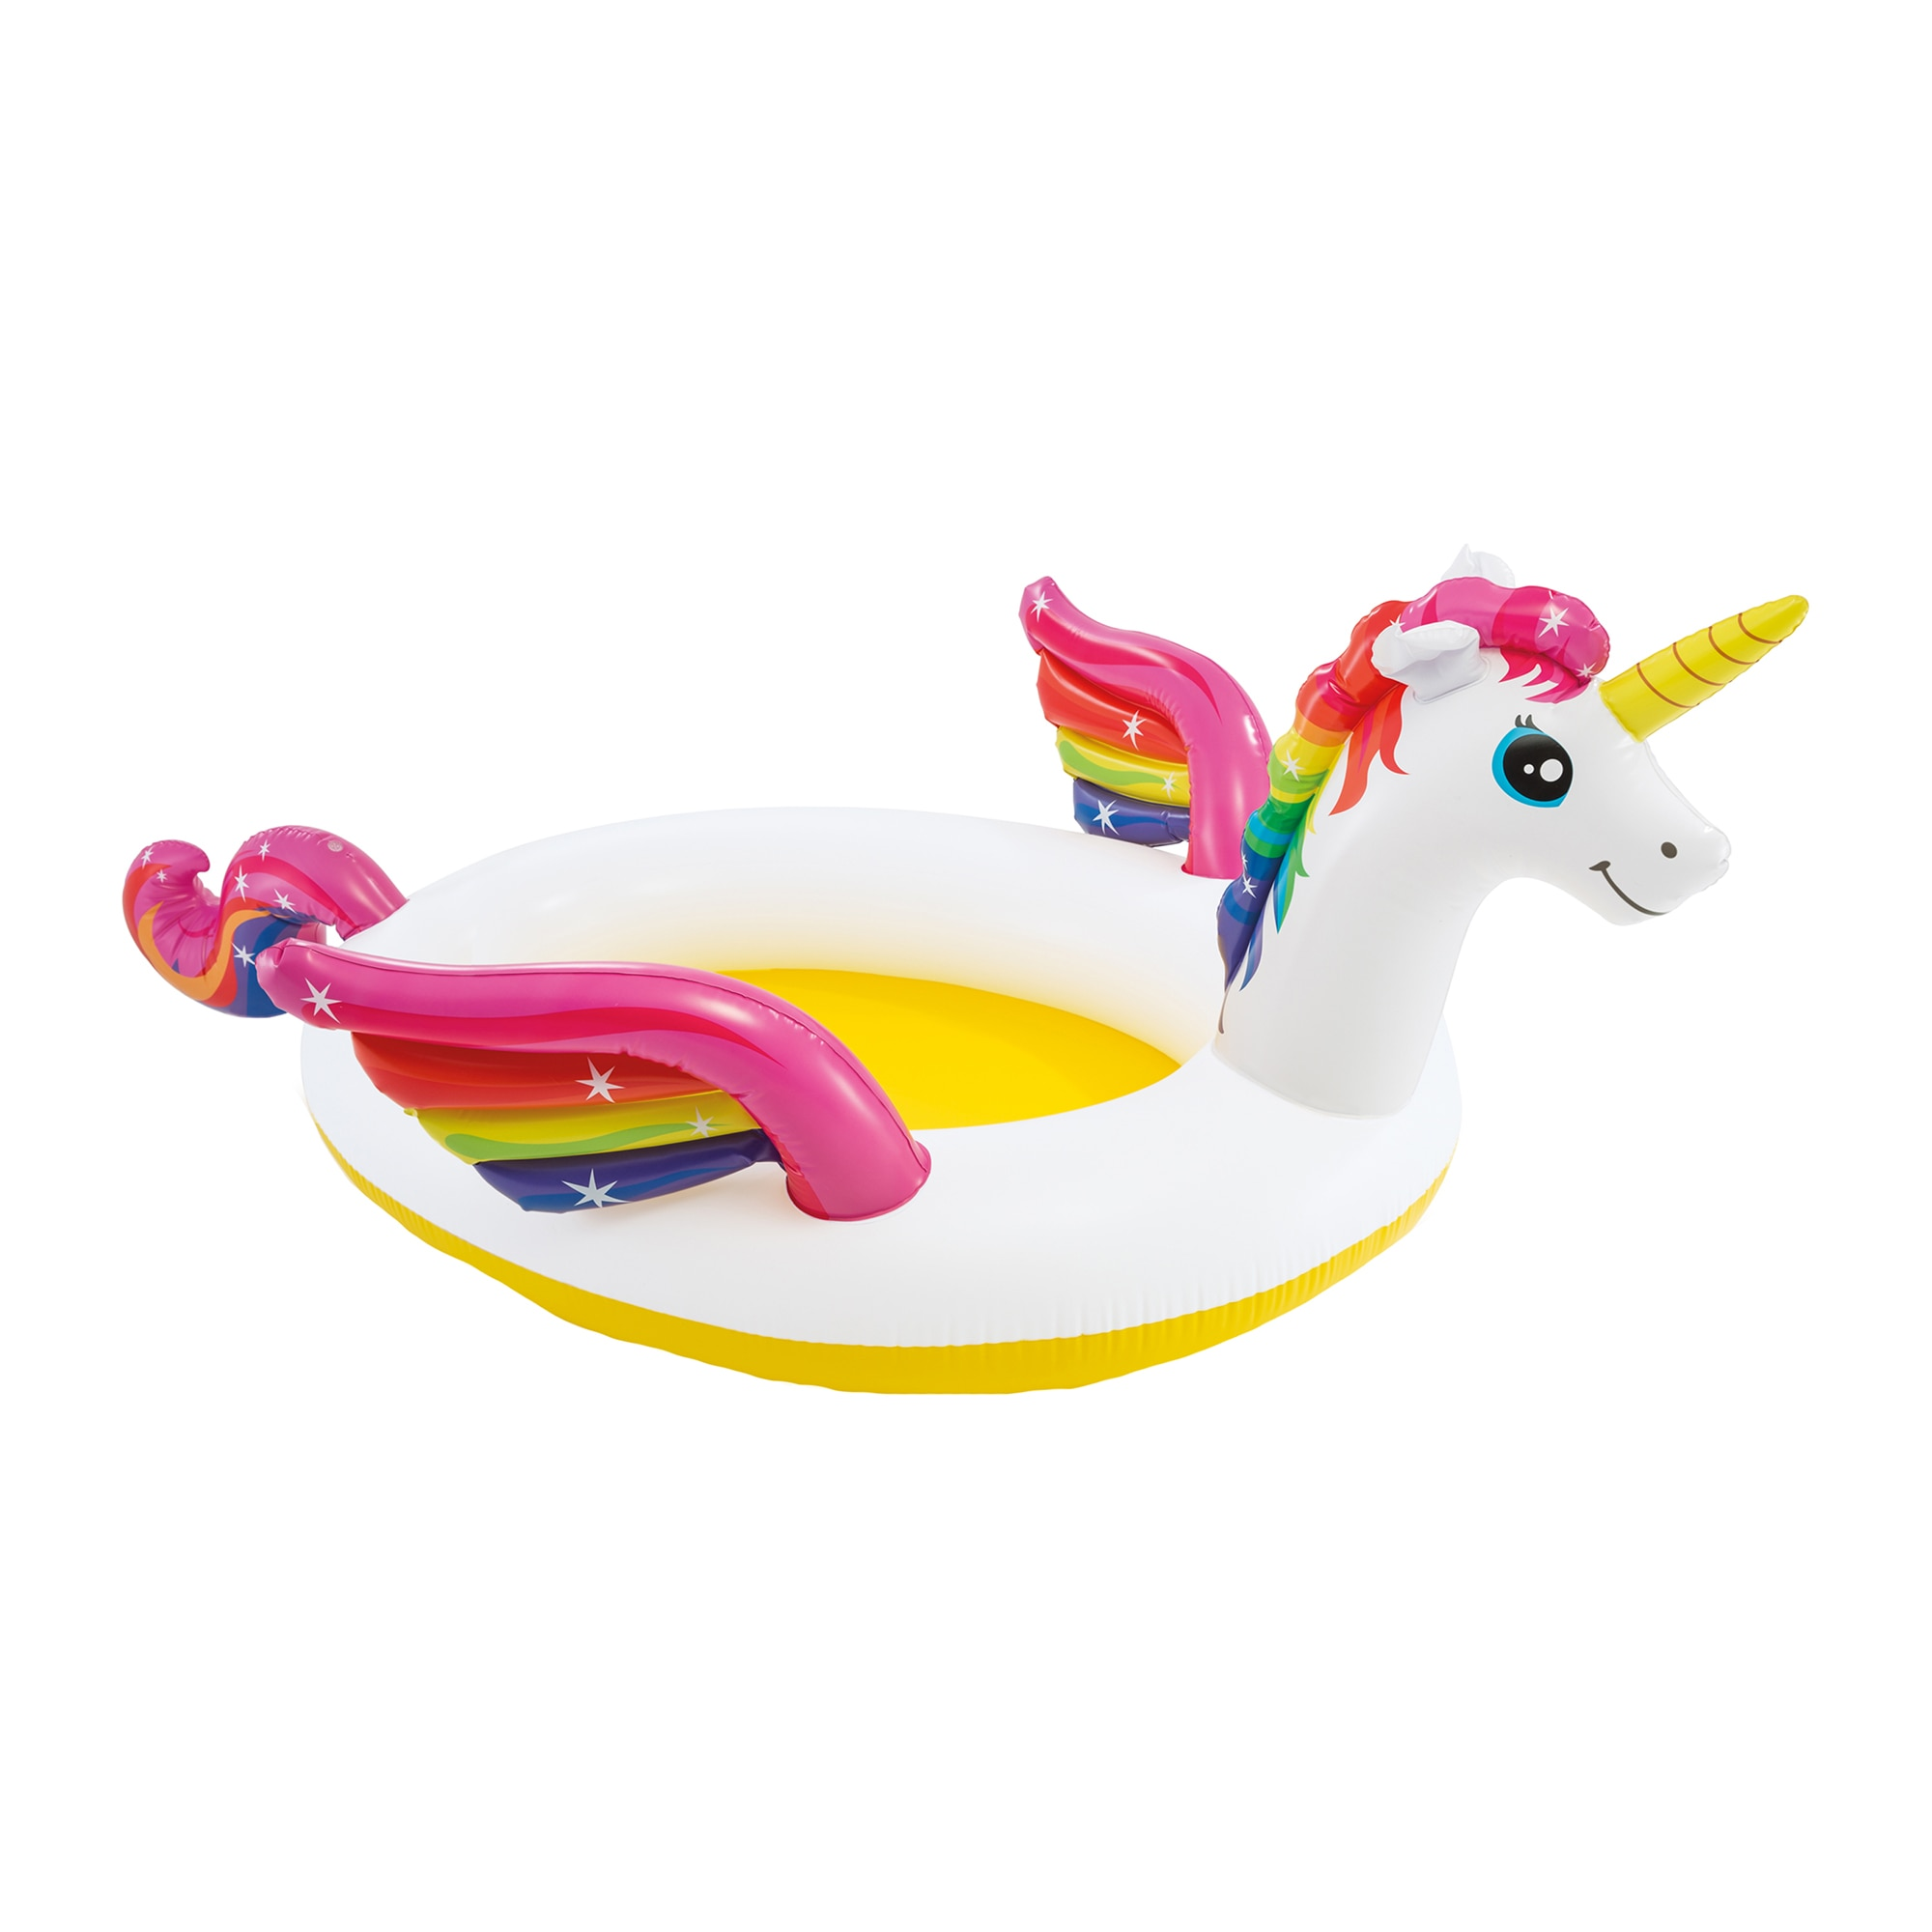 Fotografie Piscina gonflabila Intex - Mystic Unicorn Spray, 272 x 193 x 104 cm